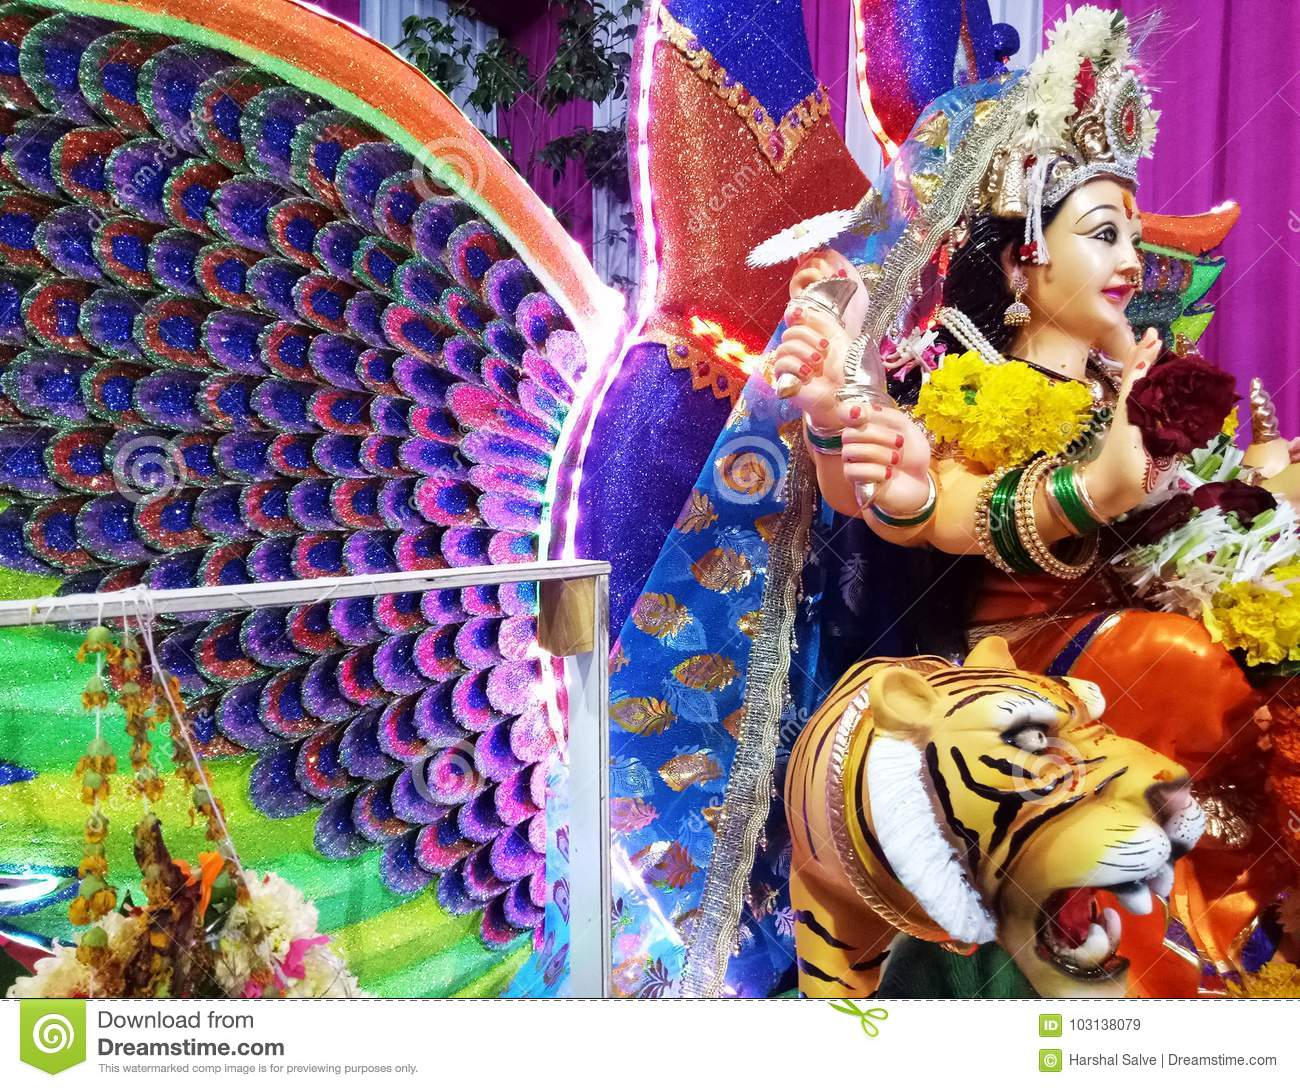 reasons for devotion to hindu goddesses Also known as and is a form of the hindu god venkateswara's most prominent shrine is the temple located in andhra pradesh in southern india find this pin and more on gods ,goddesses and devotion by doctor om  find this pin and more on gods ,goddesses and devotion by doctor om.